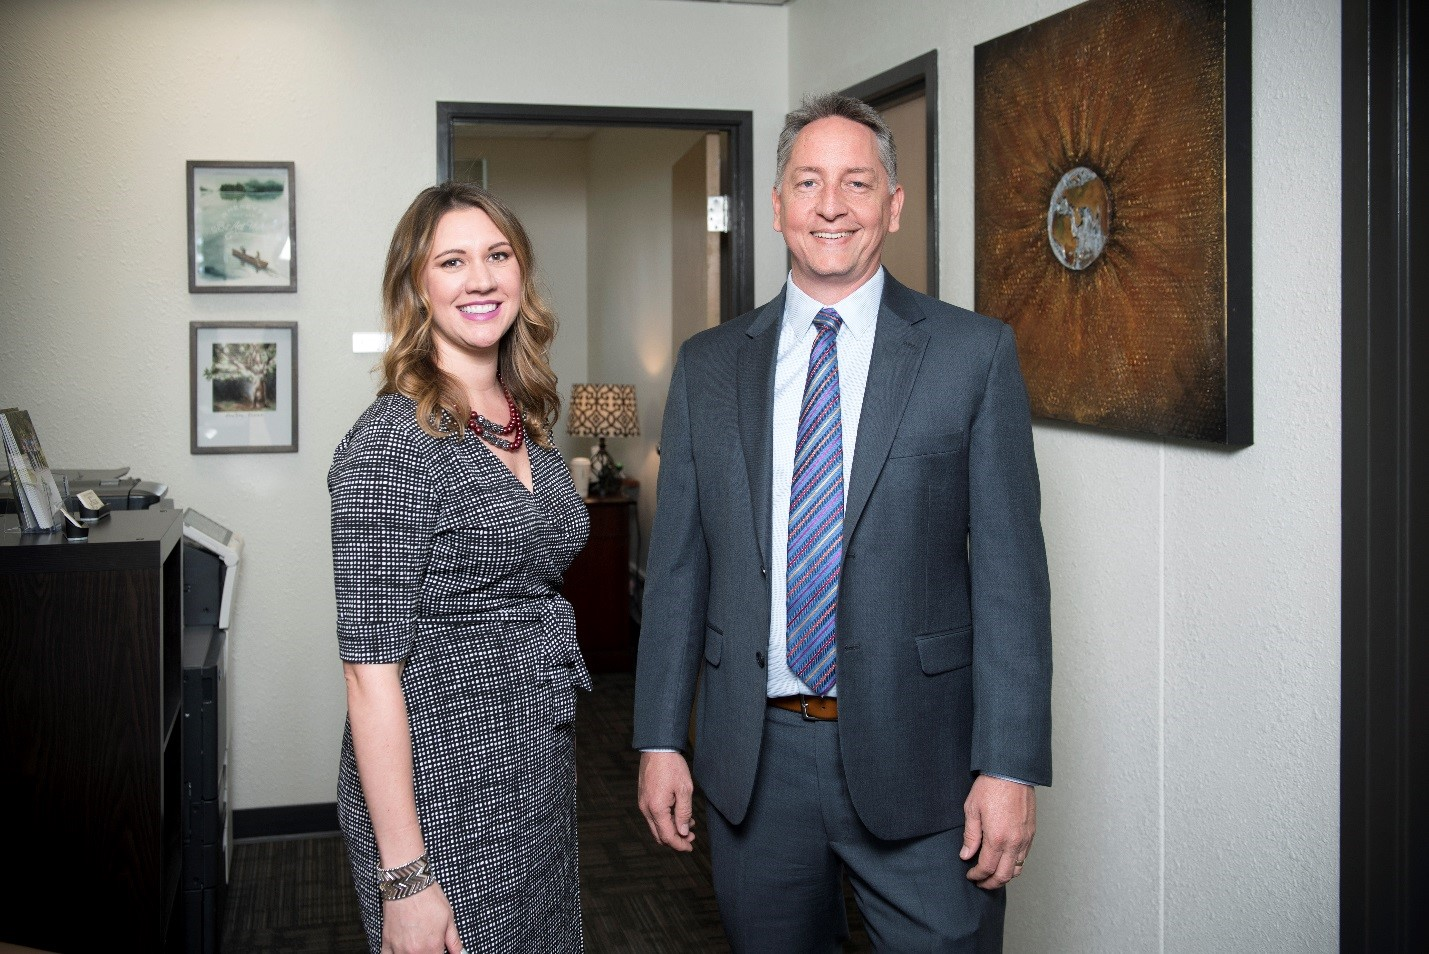 The directors of Denton Life of Purpose on the University of North Texas campus are Carly Shannon, clinical director and a UNT alumna, and Brent Harper, executive director.